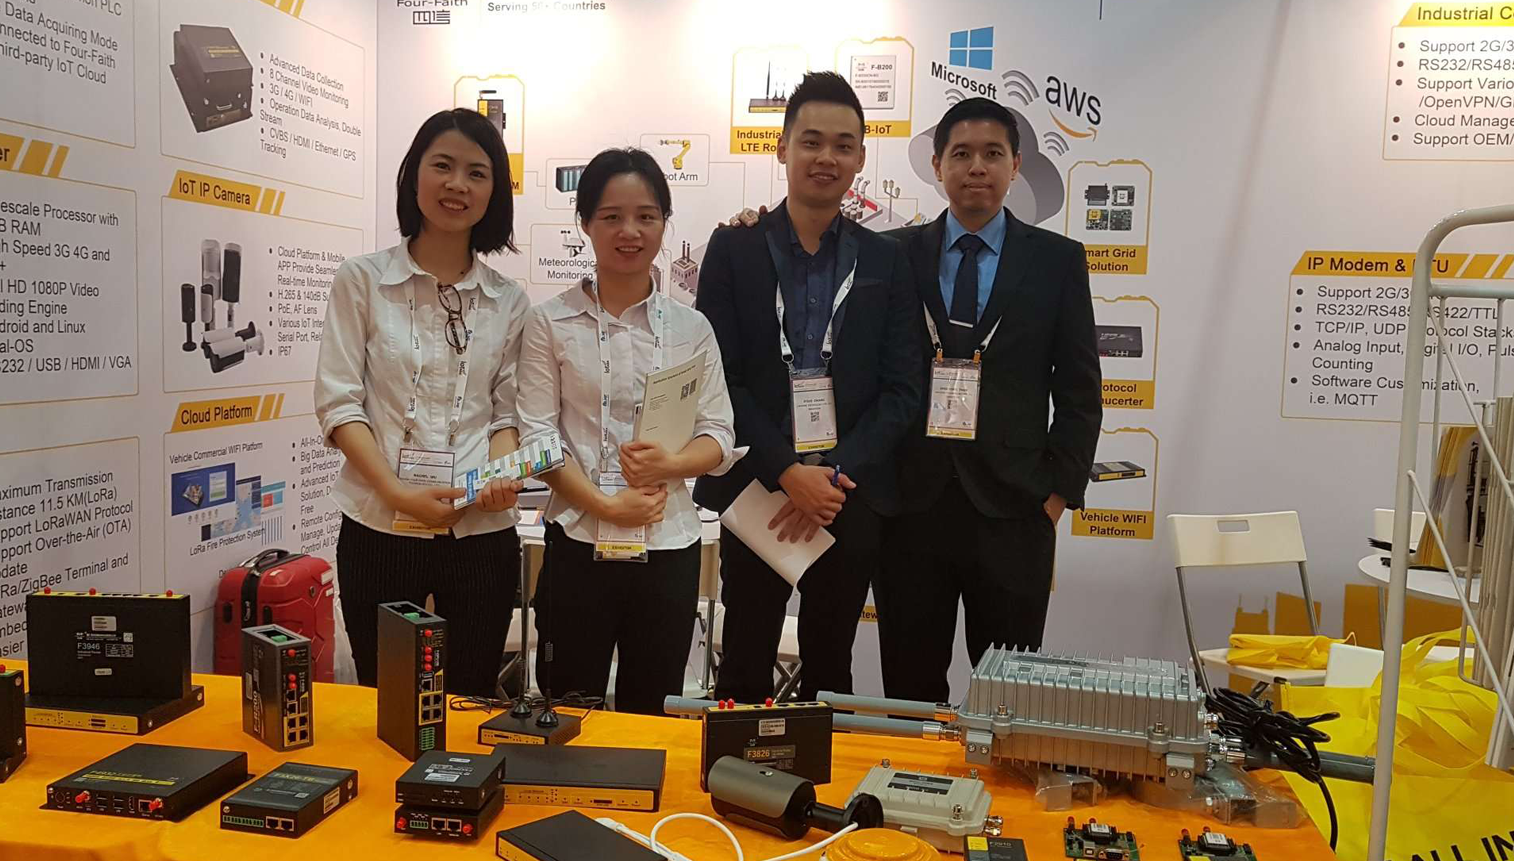 Linkwise tech with Forefaith IOT asia